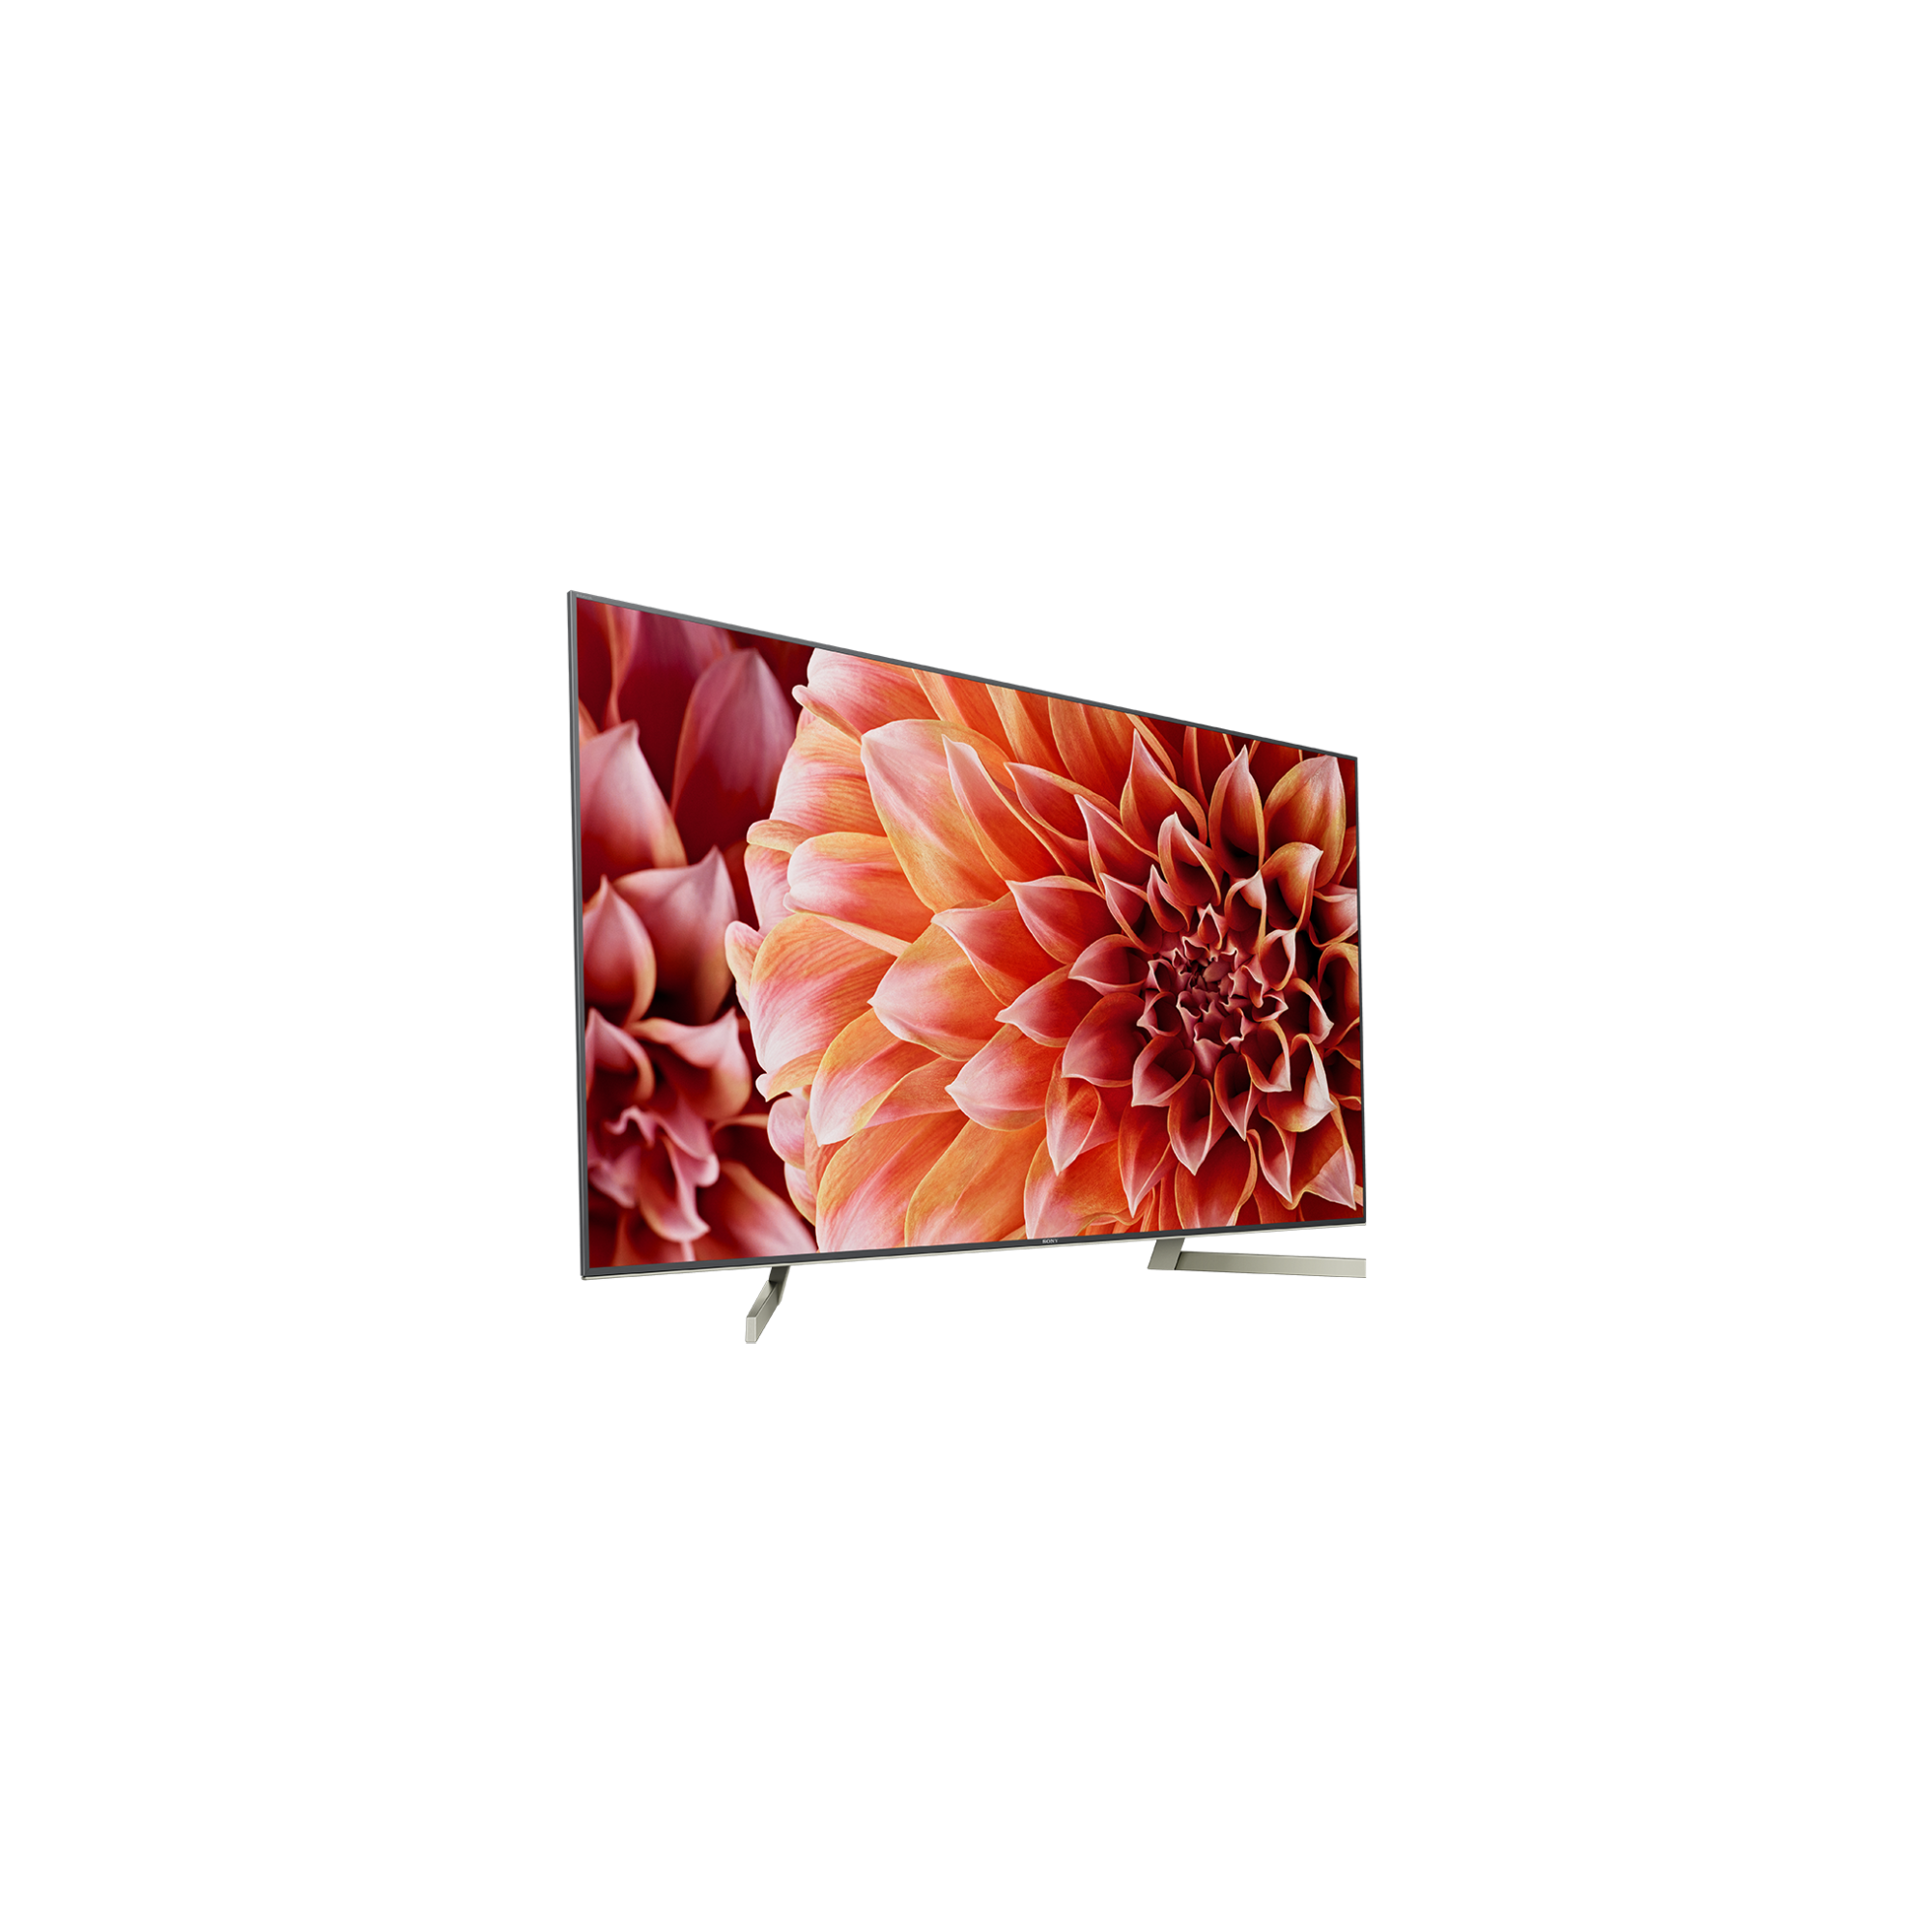 """75"""" X90F LED 4K Ultra HDR Android TV with Dolby Vision, , hi-res"""